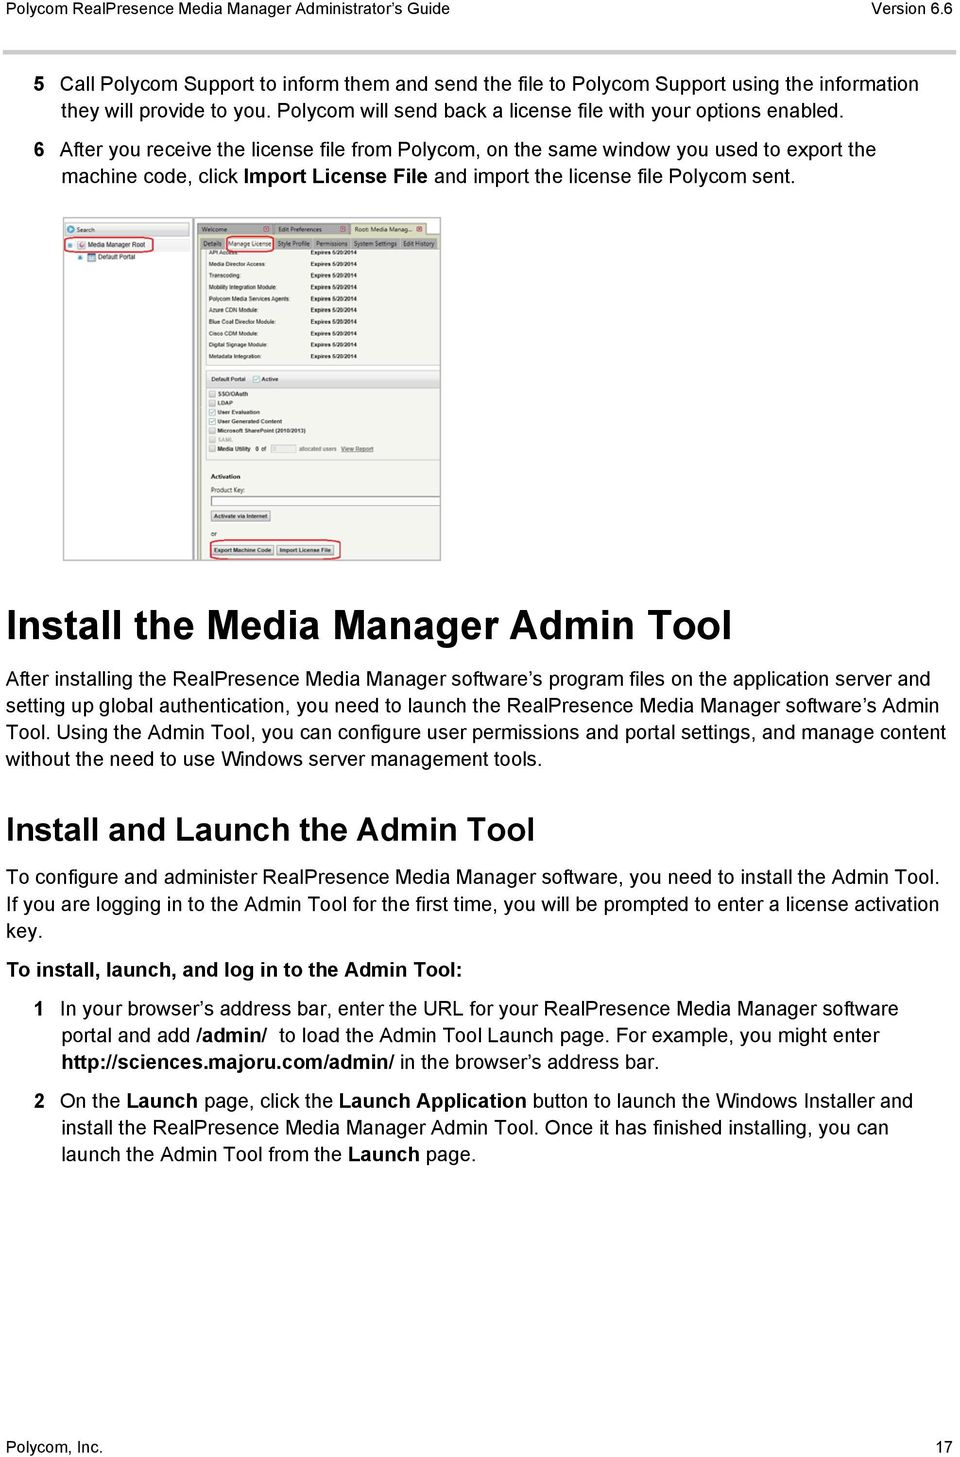 Install the Media Manager Admin Tool After installing the RealPresence Media Manager software s program files on the application server and setting up global authentication, you need to launch the